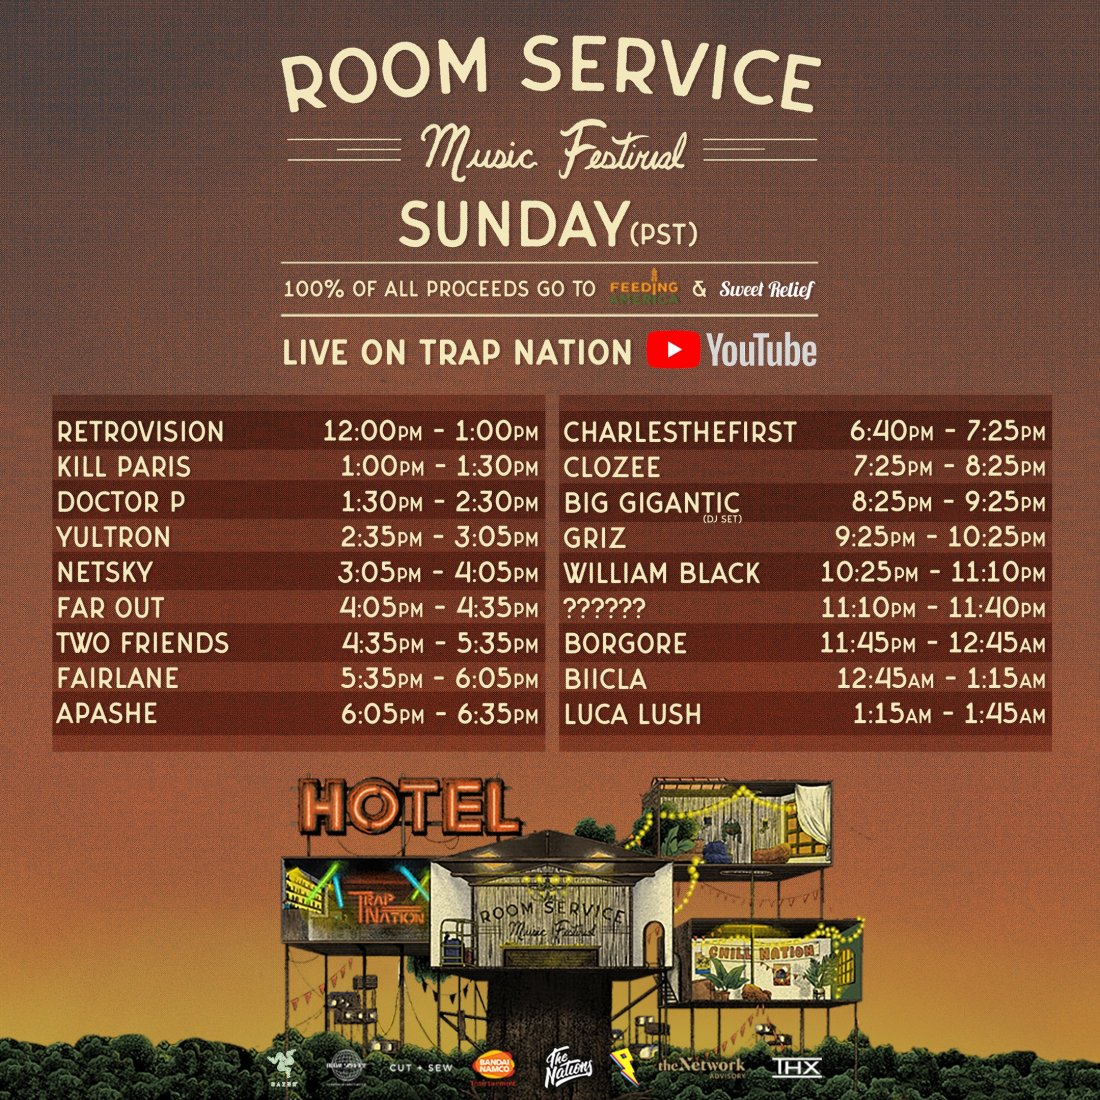 roomservice sunday trap